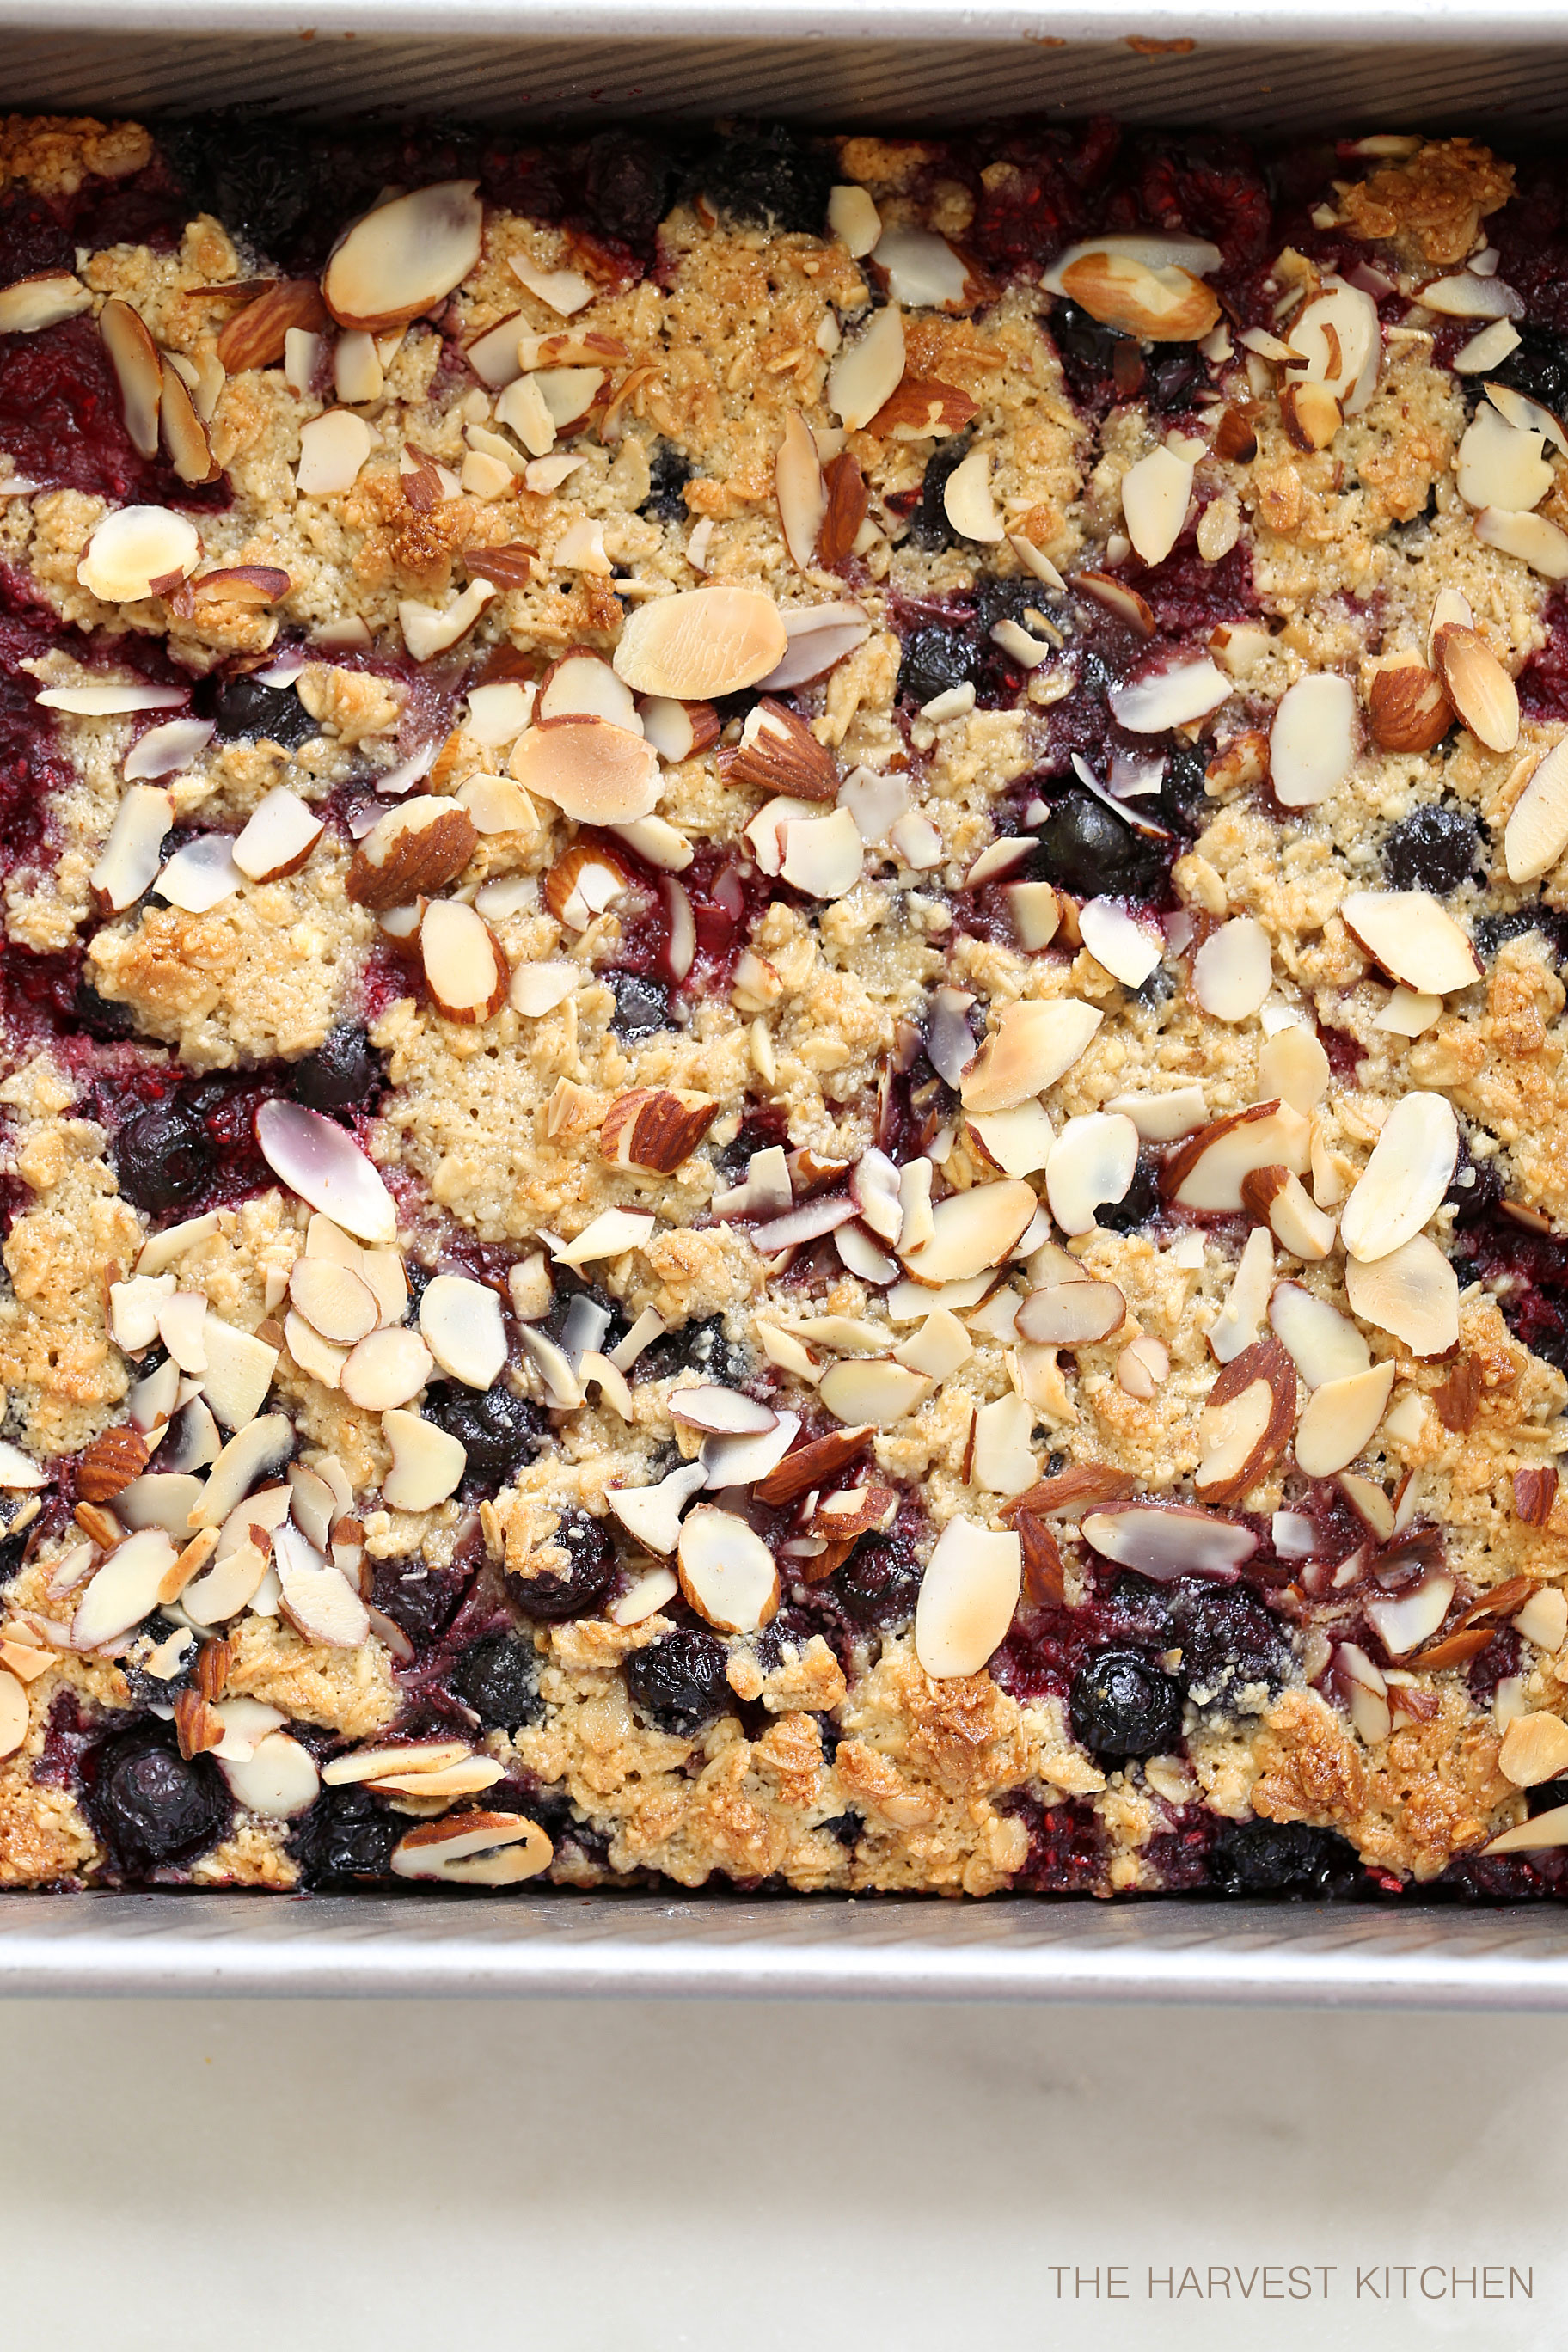 These Healthy Berry Oatmeal Crumb Bars are loaded with berries and the crumb topping is delicately crispy and completely addicting